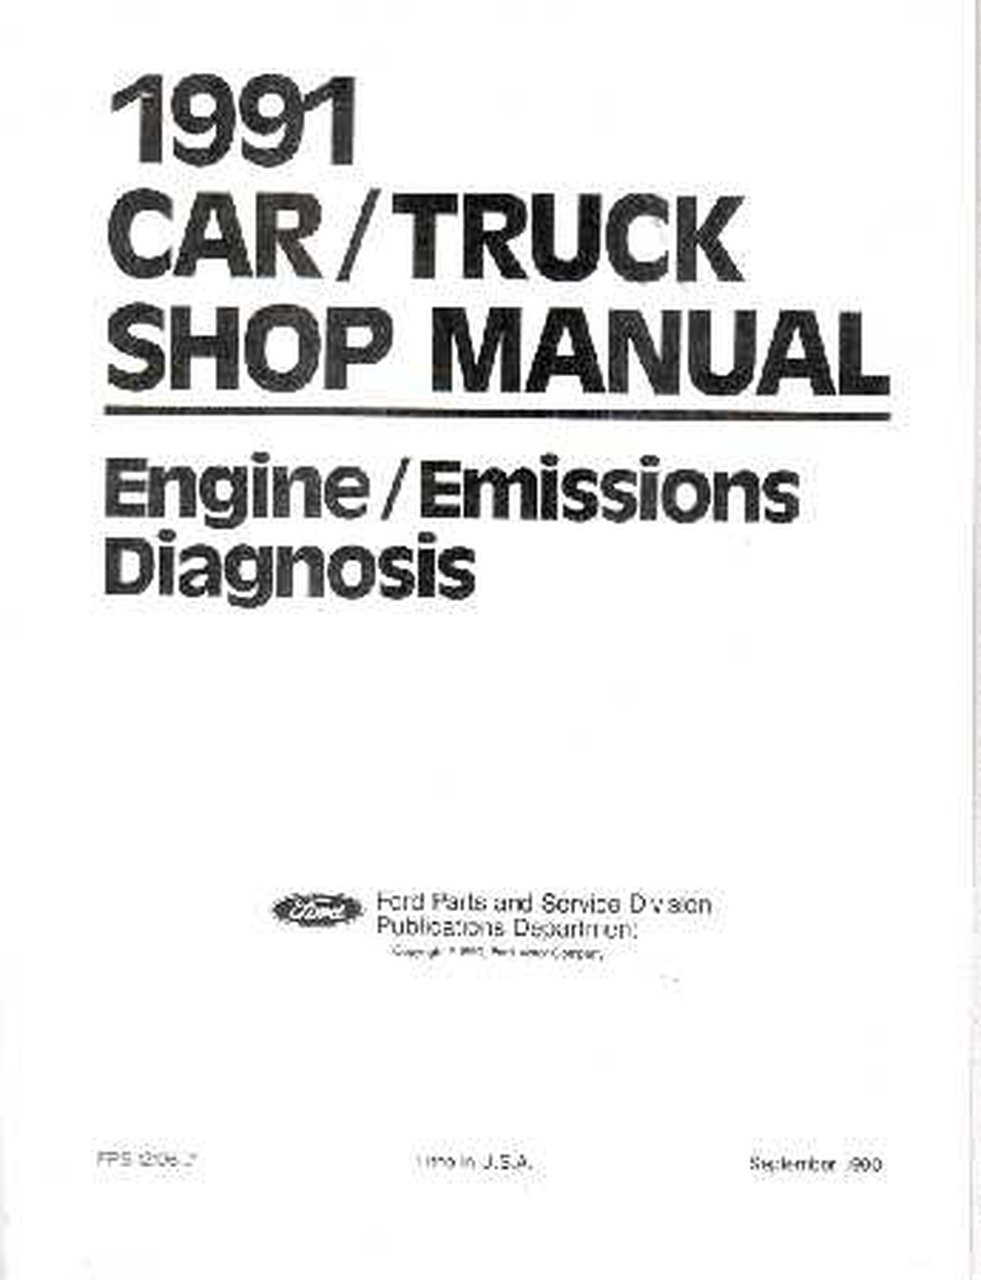 1991 ford 5 0 engine diagram oem repair maintenance shop manual ford vol h eng emissions   diag  oem repair maintenance shop manual ford